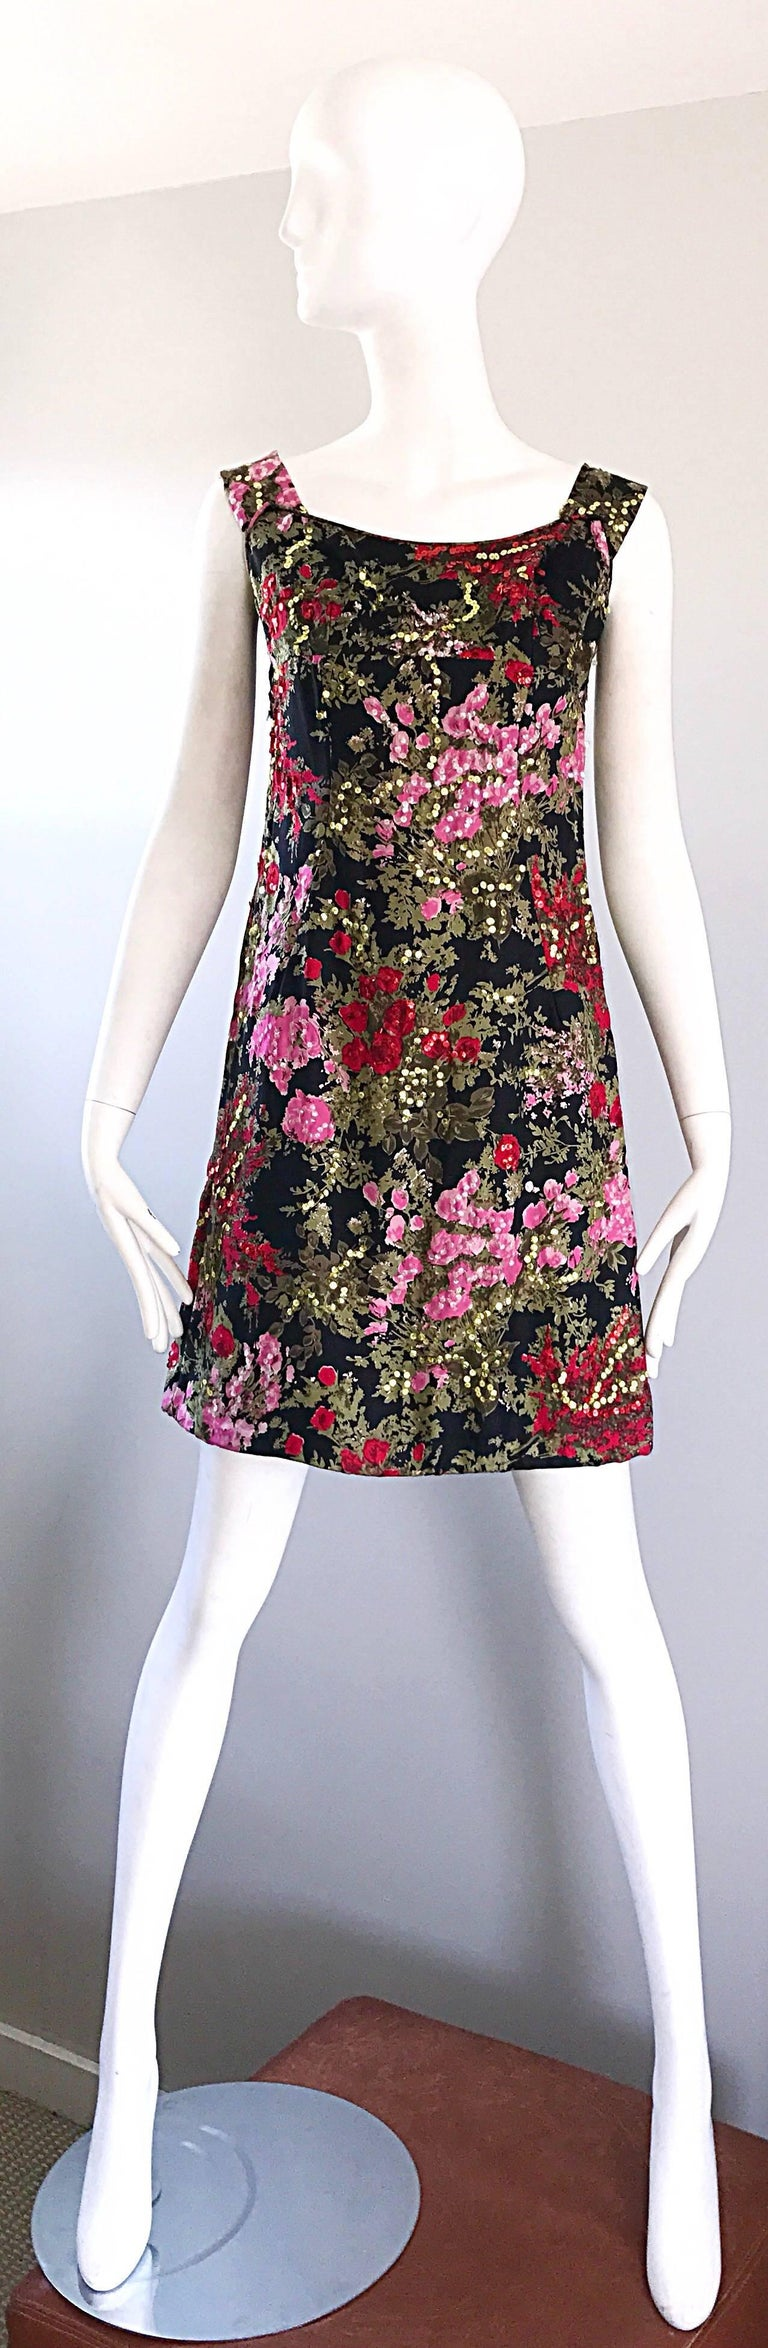 1960s Lord and Taylor Black + Pink + Red Silk Sequin Vintage 60s ...